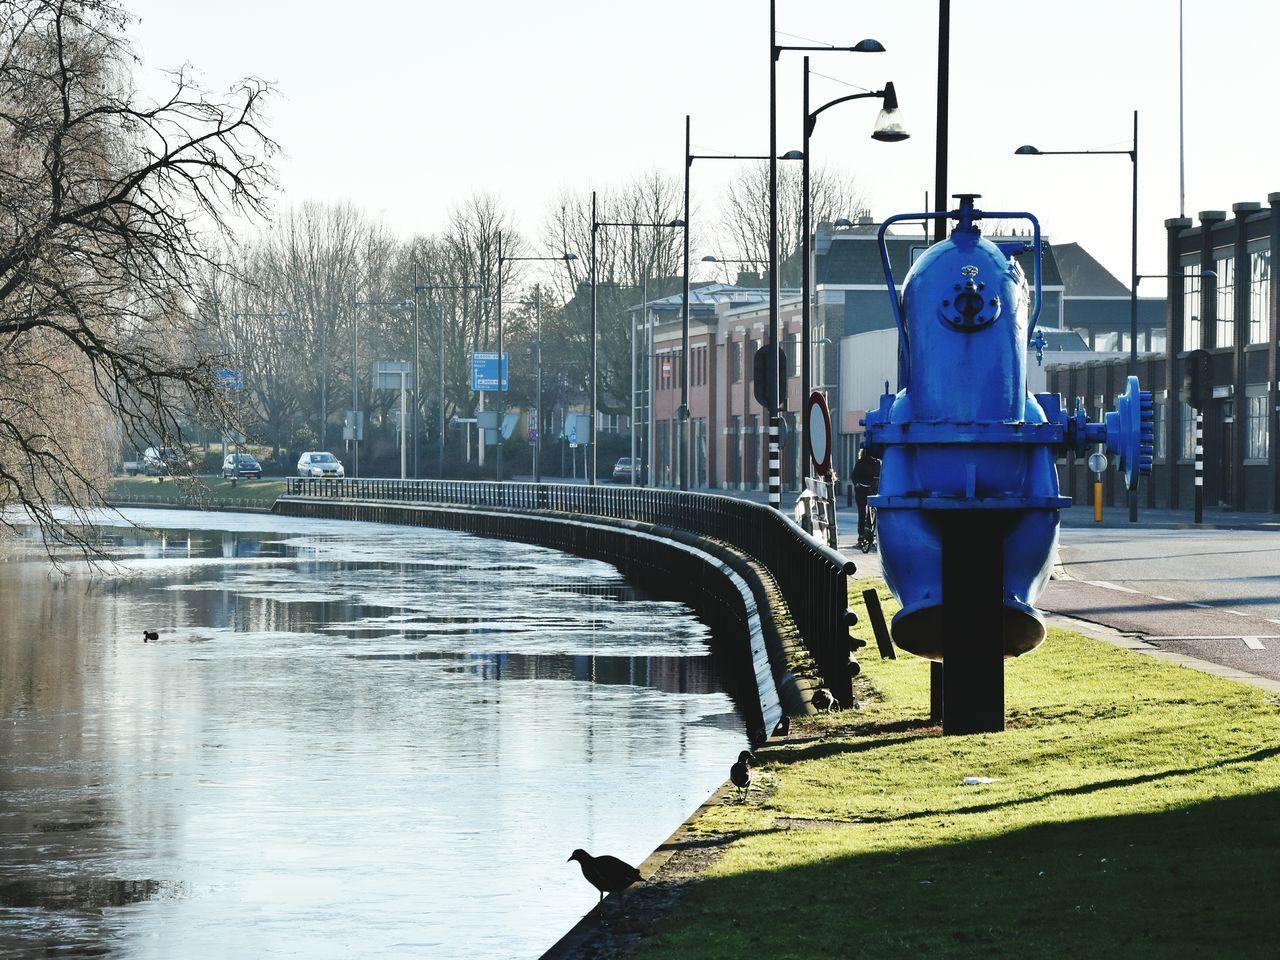 Pump Industrial Equipment Blue Canal Frozen Adapted To The City Canal Helmond Zuidwillemsvaart Birds Waterfowl Coots Trees Reflections Ice Grass Road Lampposts Industrial Heritage Fence Sunlight And Shadow Industrial Buildings Windows The City Light